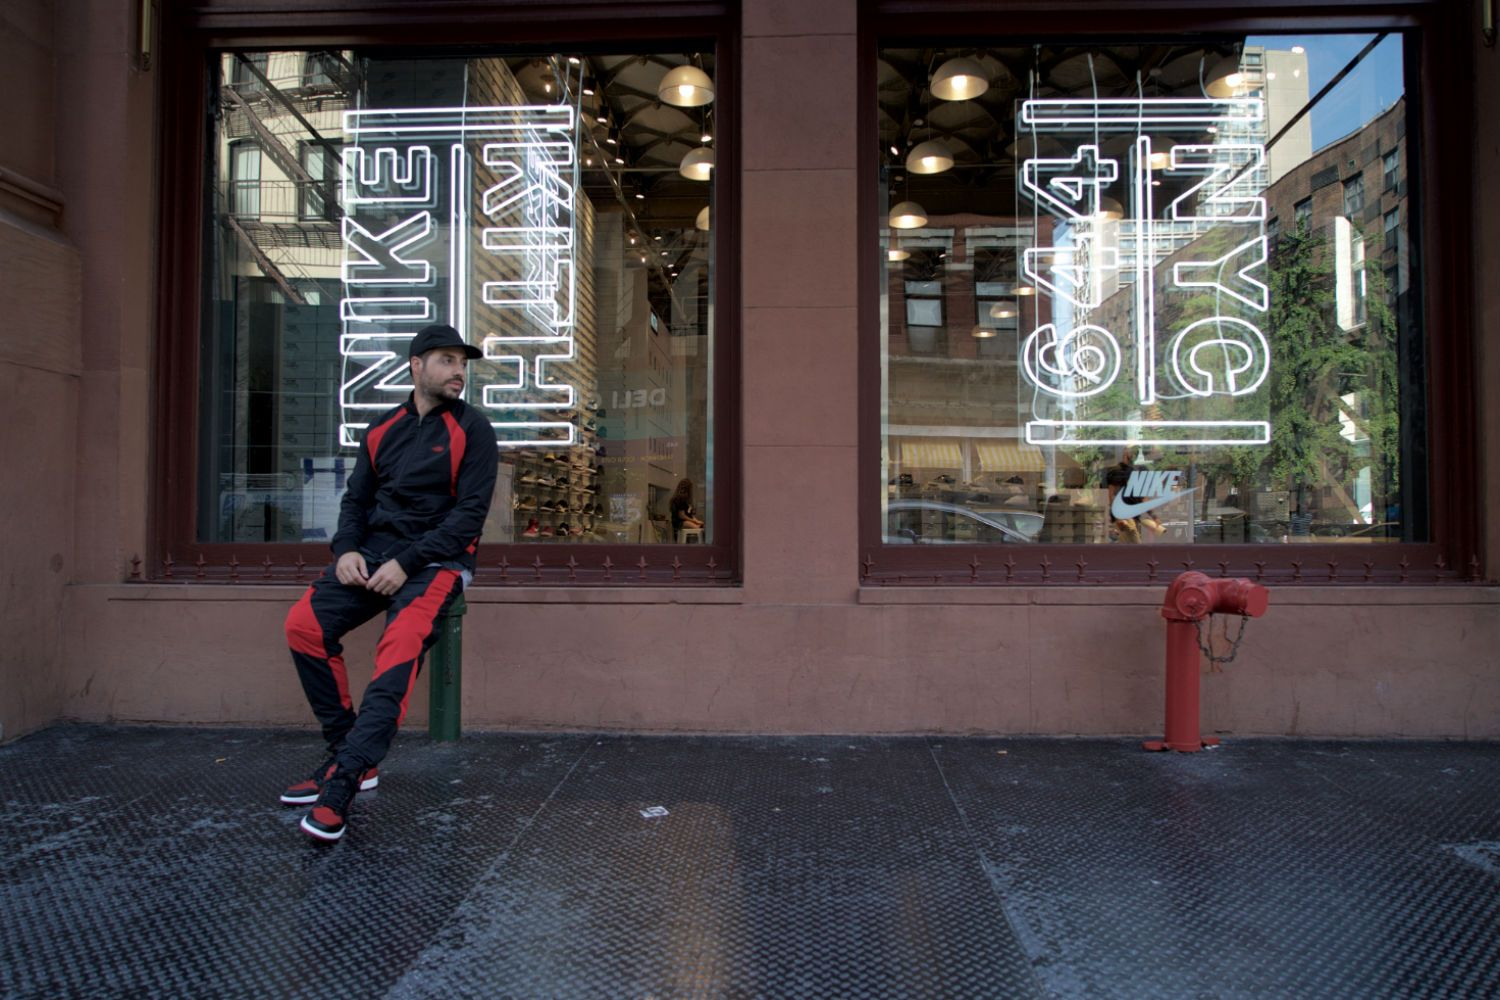 air-jordan-1-retro-og-banned-featured-lookbook